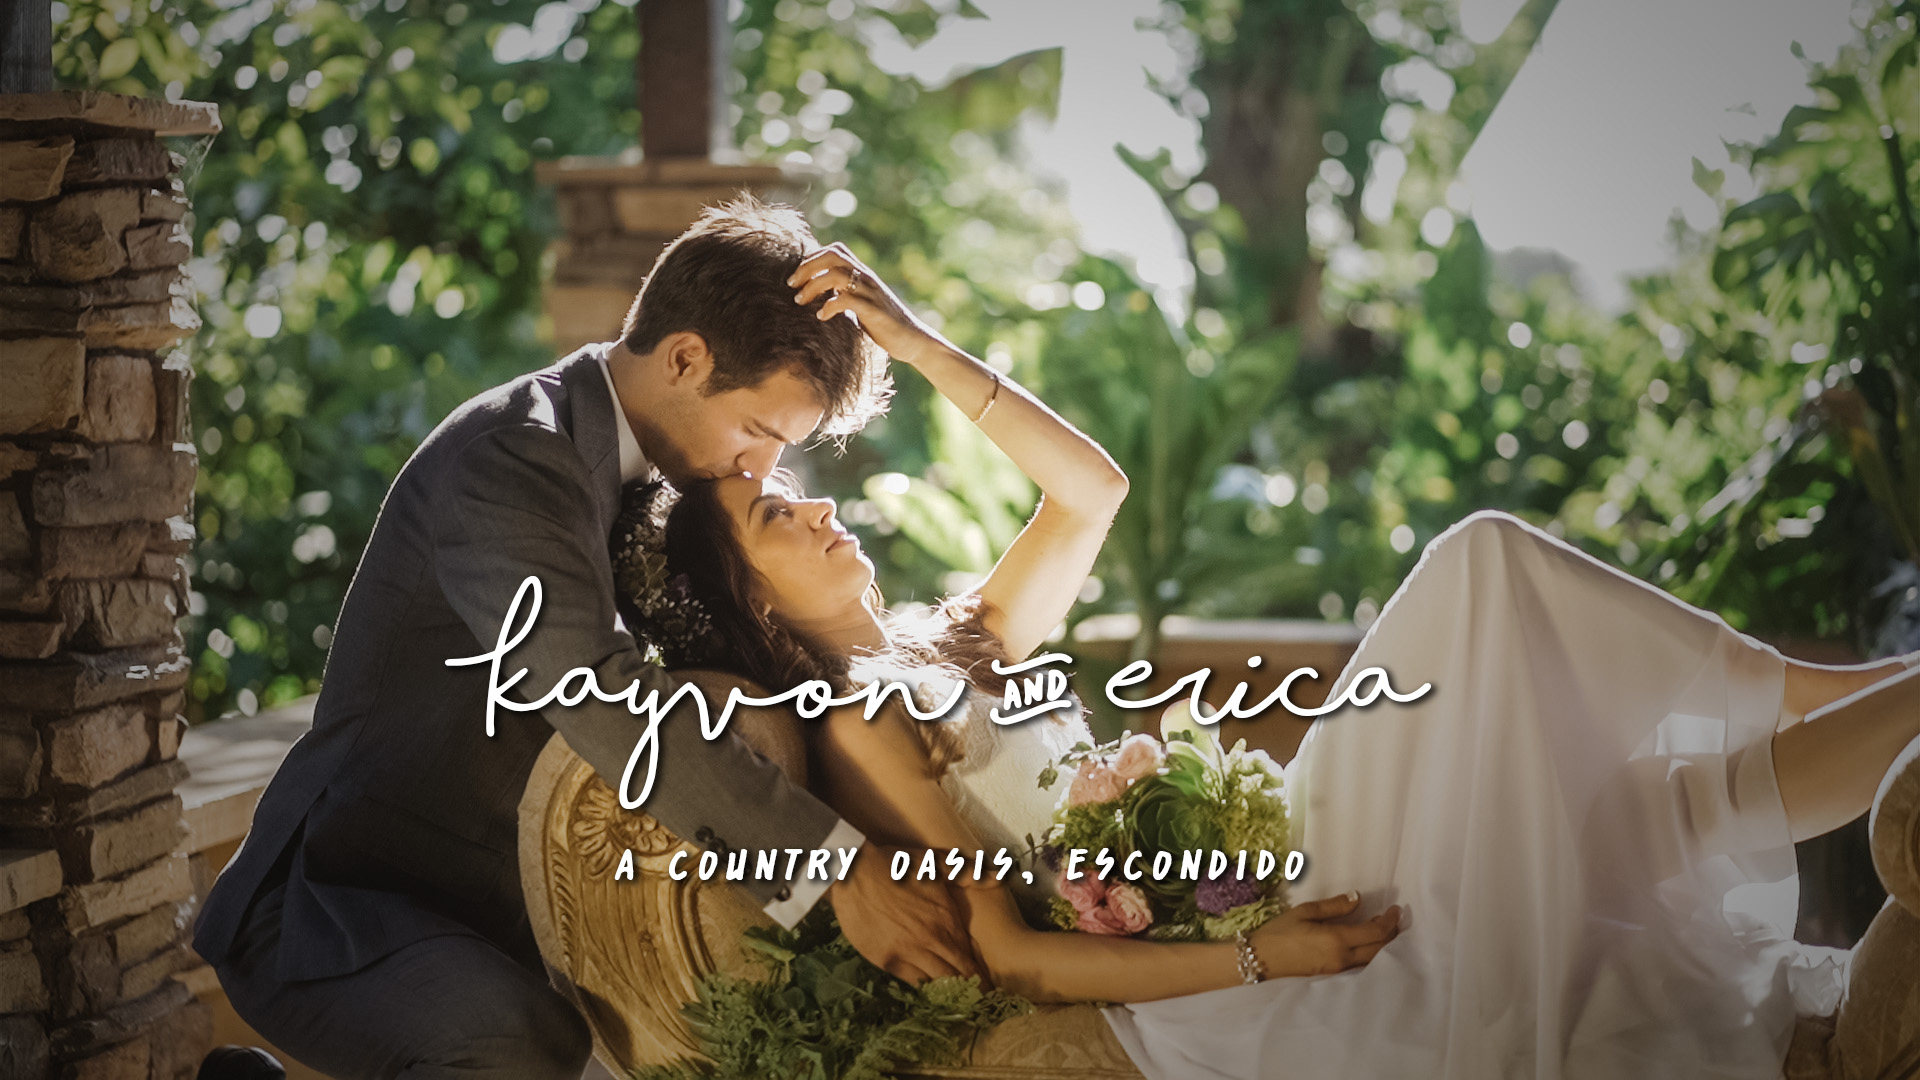 Kayvon + Erica | Escondido, California | A Country Oasis